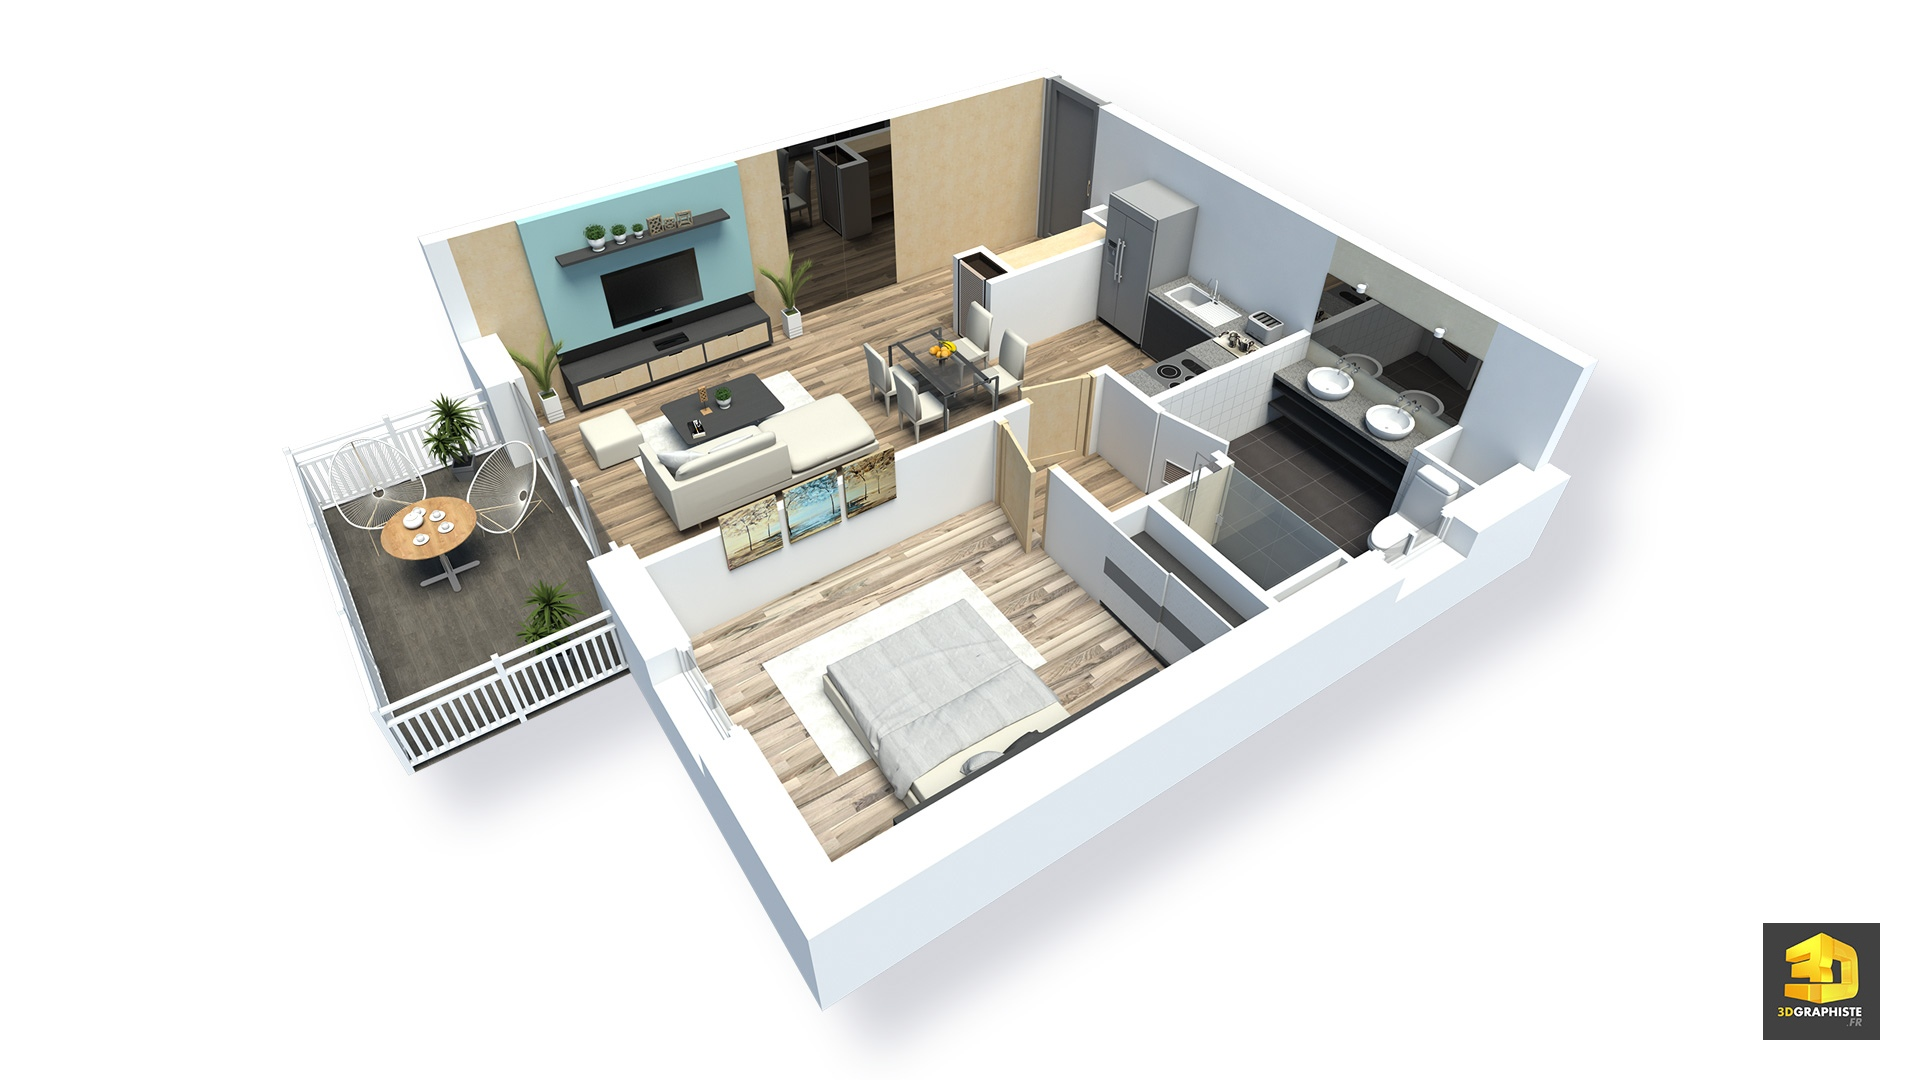 Plan D'appartement Plans De Vente D Appartements Archives 3dgraphiste Fr